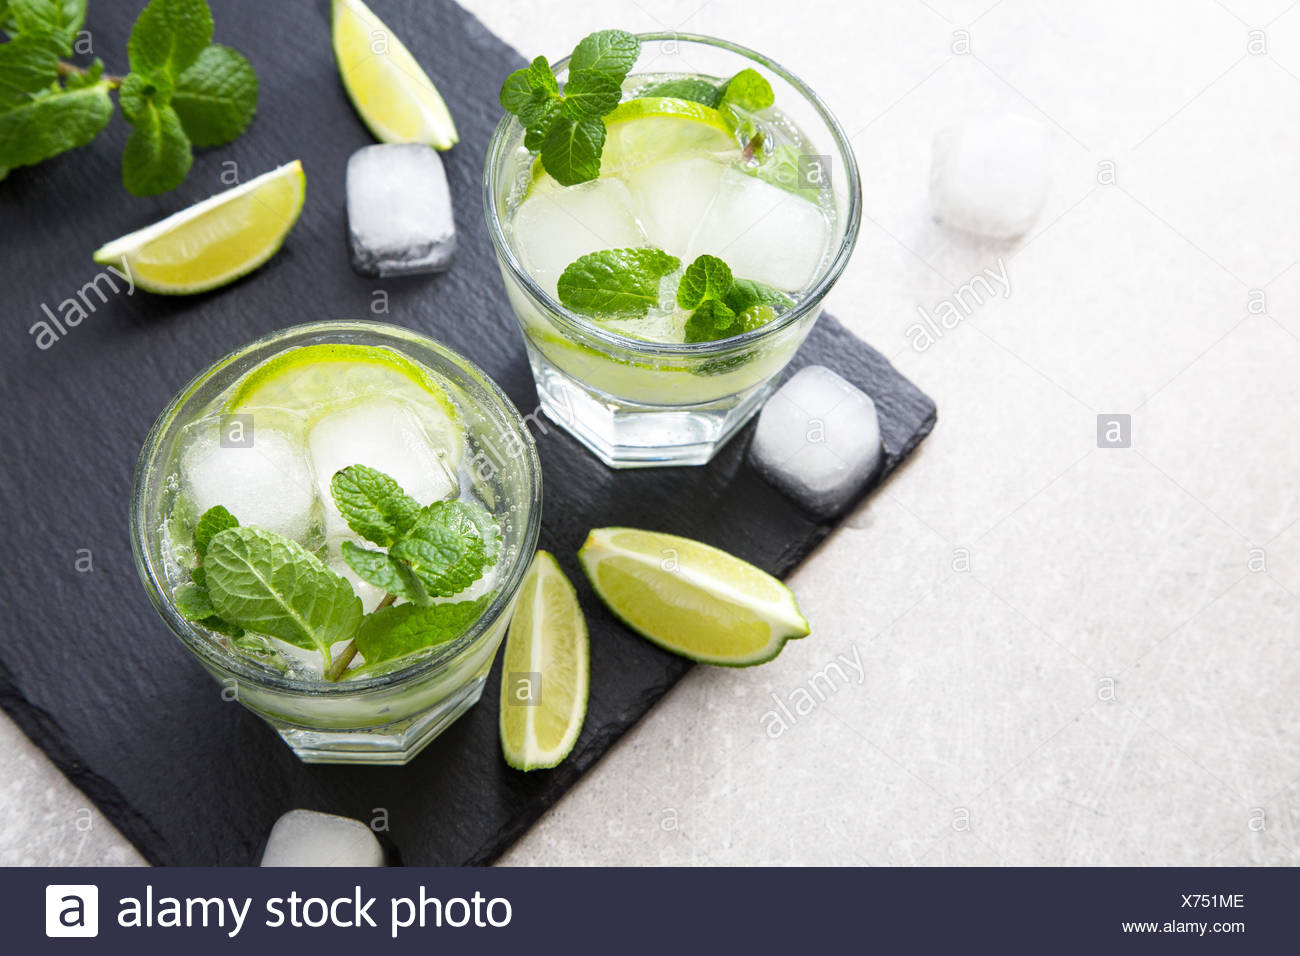 Cold refreshing summer lemonade mojito in a glass on a slate board and stone background. - Stock Image